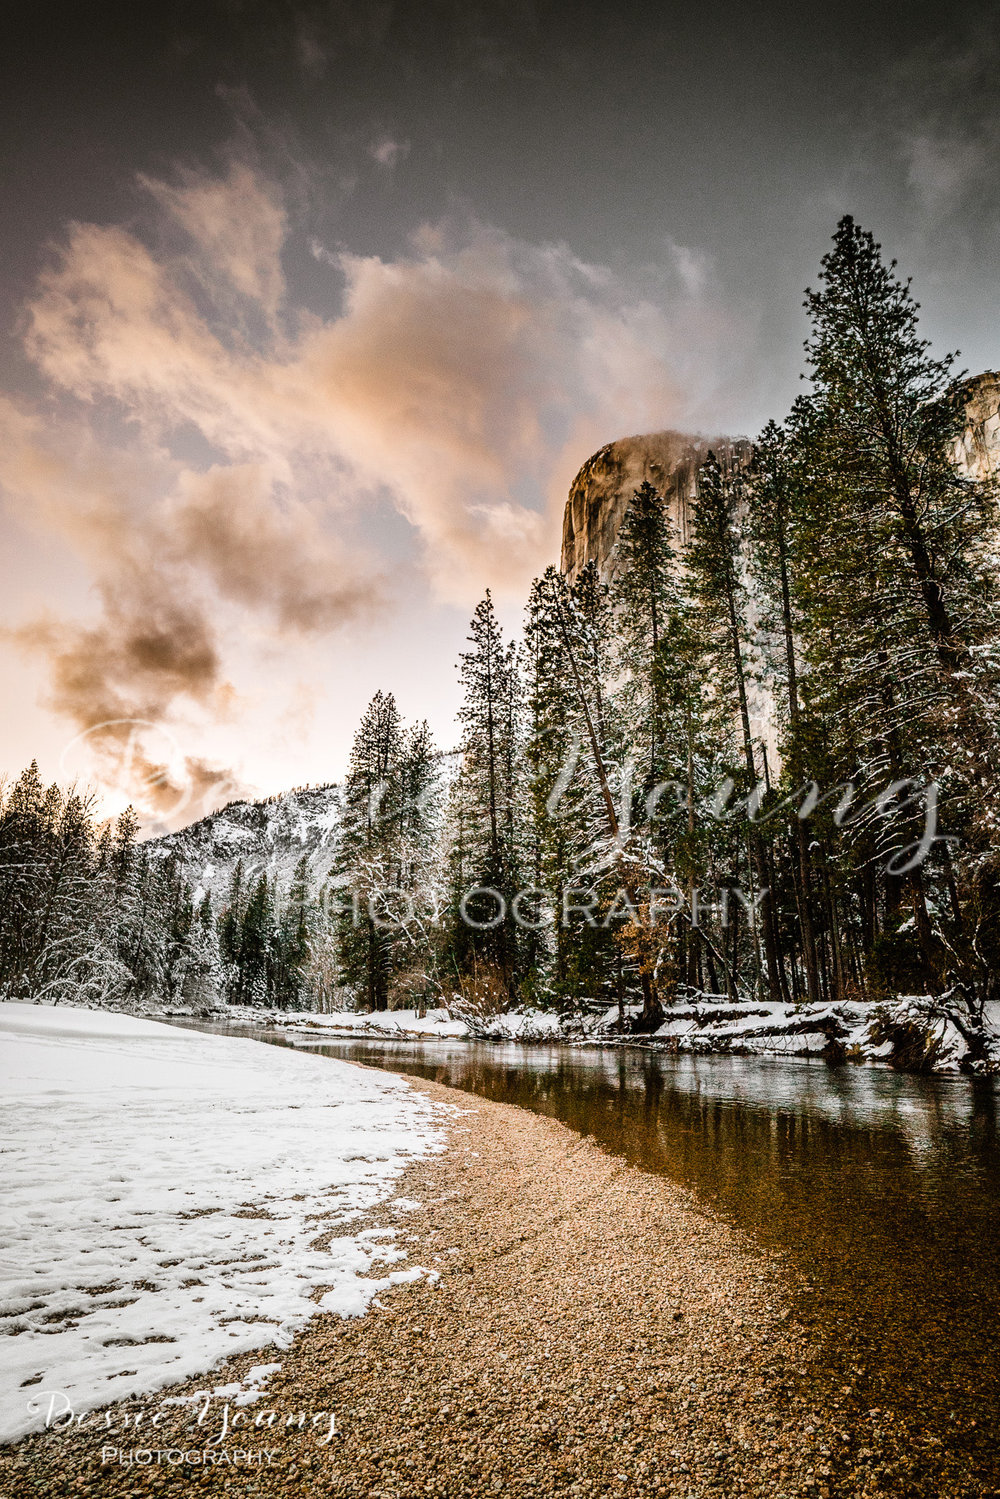 Yosemite National Park Photography One of a Kind By Bessie Young Photography - Yosemite in the Winter One of a Kind Photograph.jpg